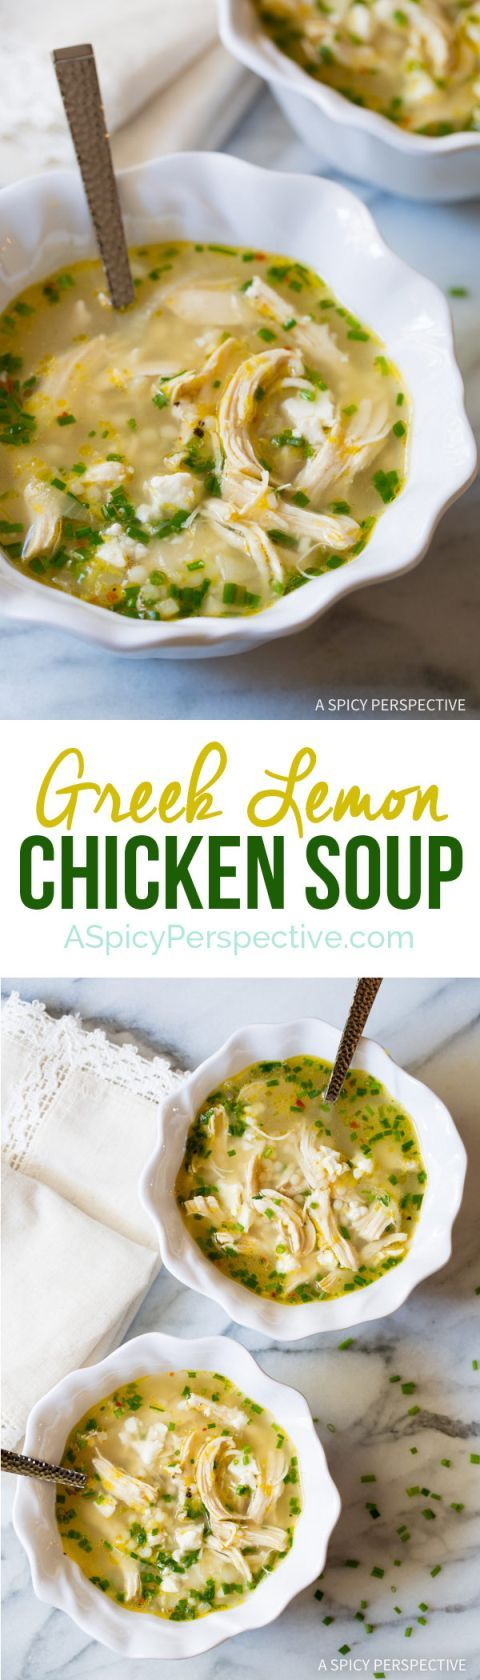 Just crazy over this Healthy Greek Lemon Chicken Soup Recipe on ASpicyPerspective.com #greeklemonrice